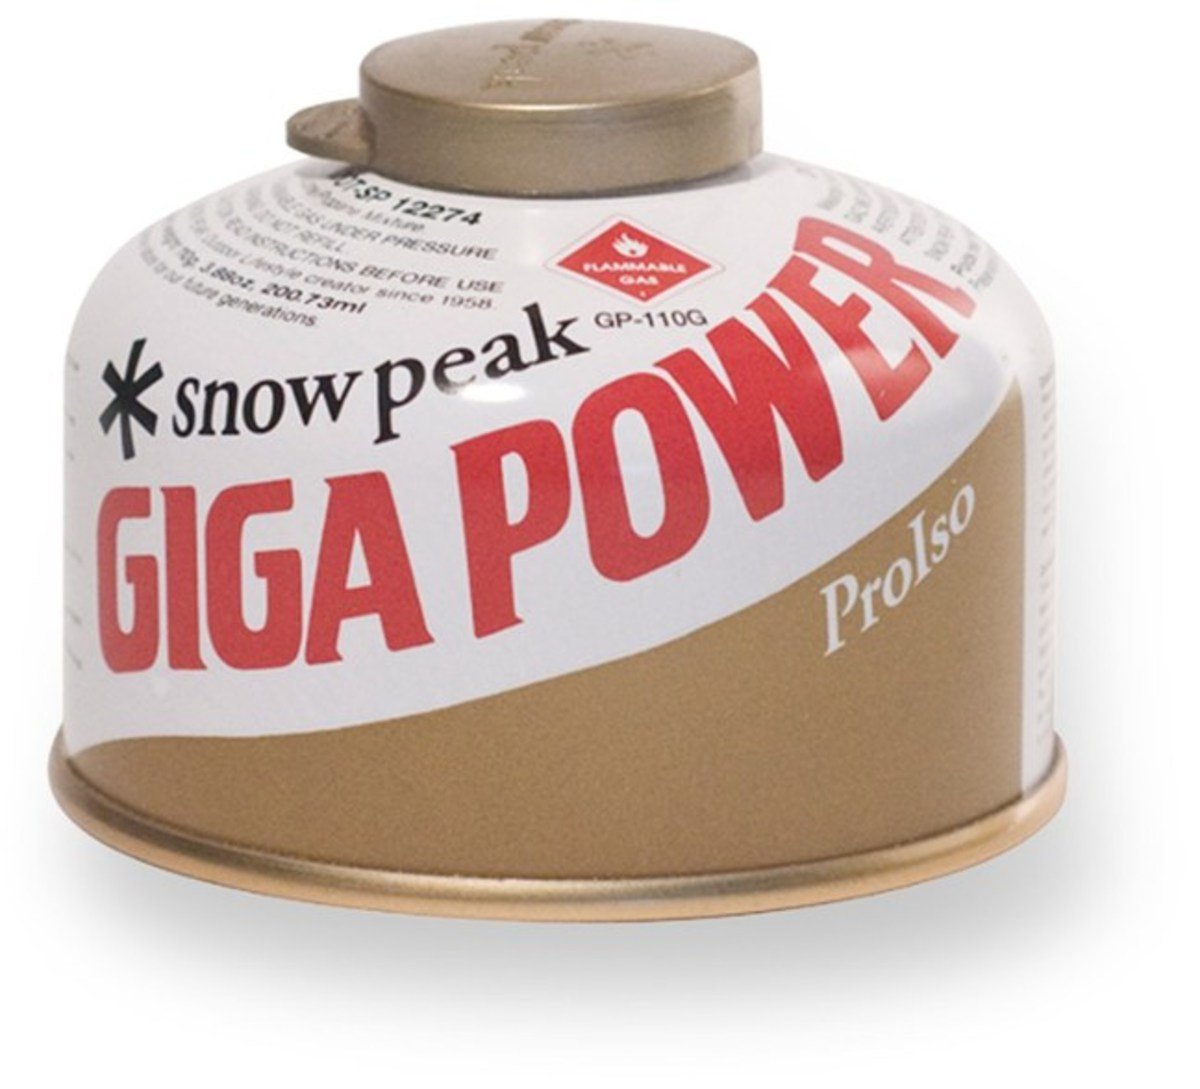 Snow Peak GigaPower 110 Gold Fuel Canister - 110g